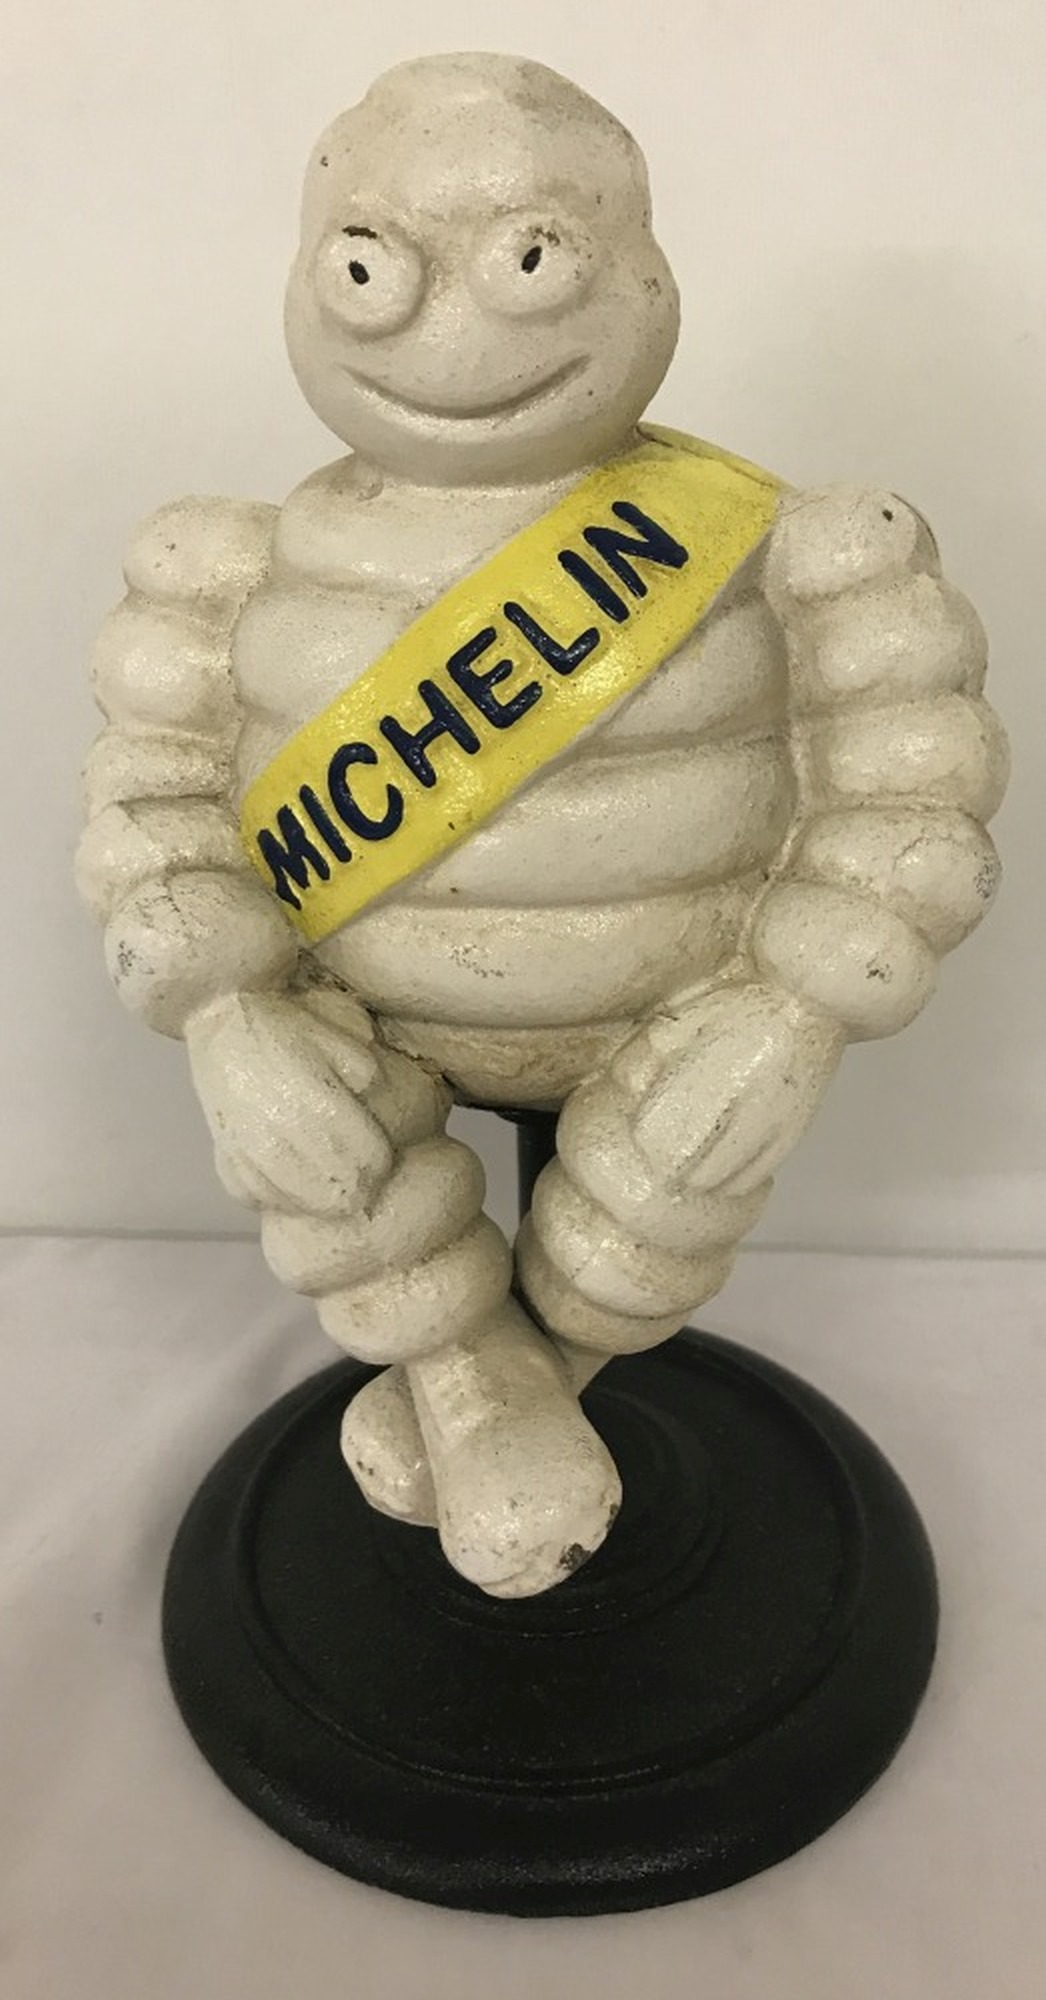 A cast iron sitting Michelin Man figurine on pedestal stand.